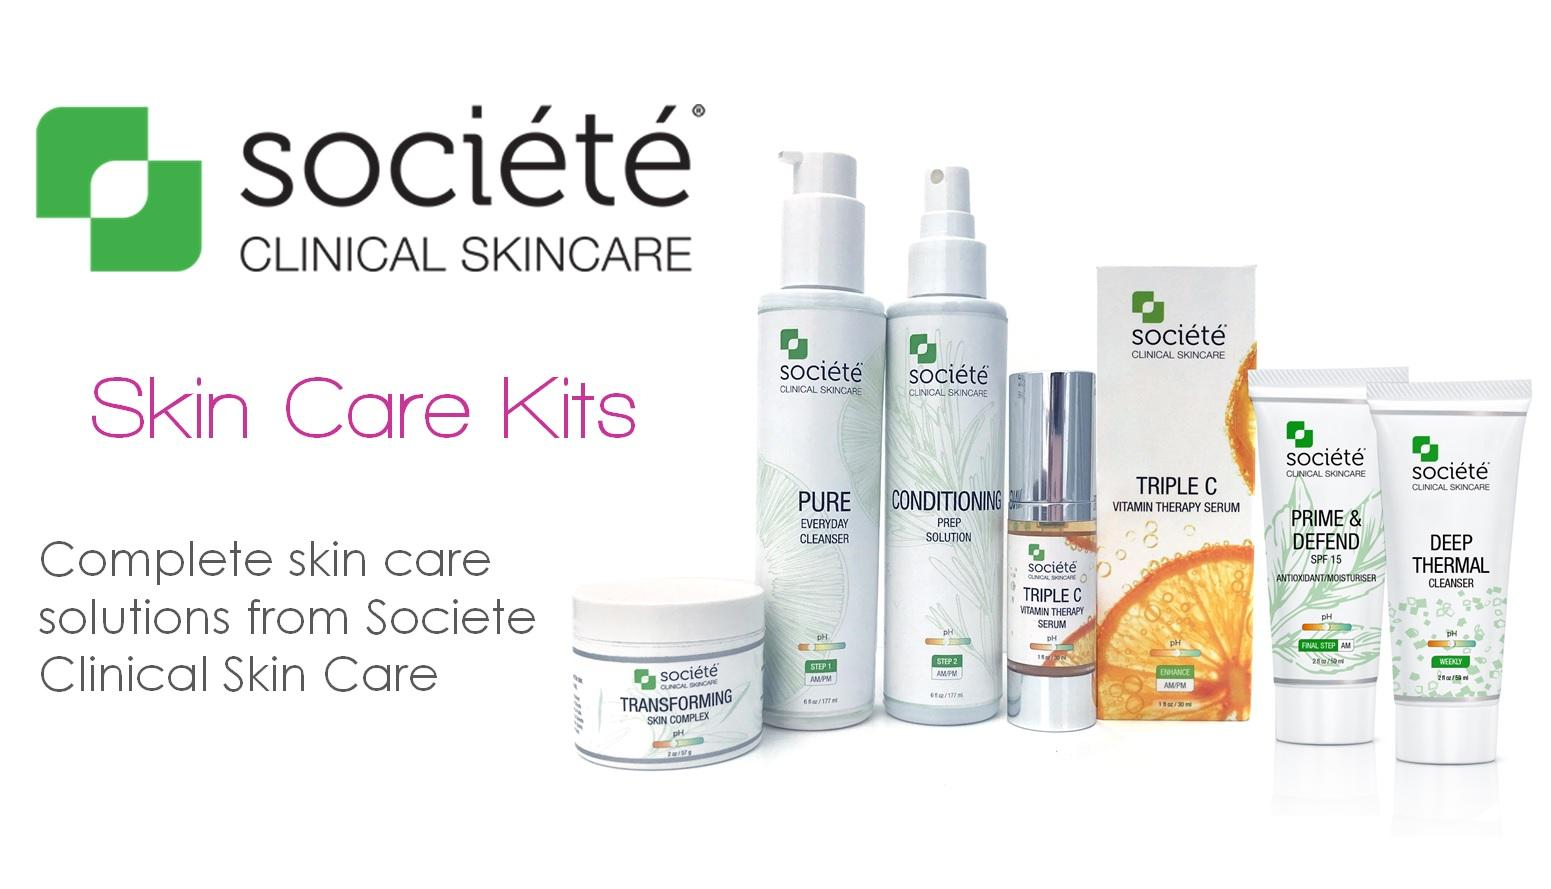 Societe Skin Care Kits